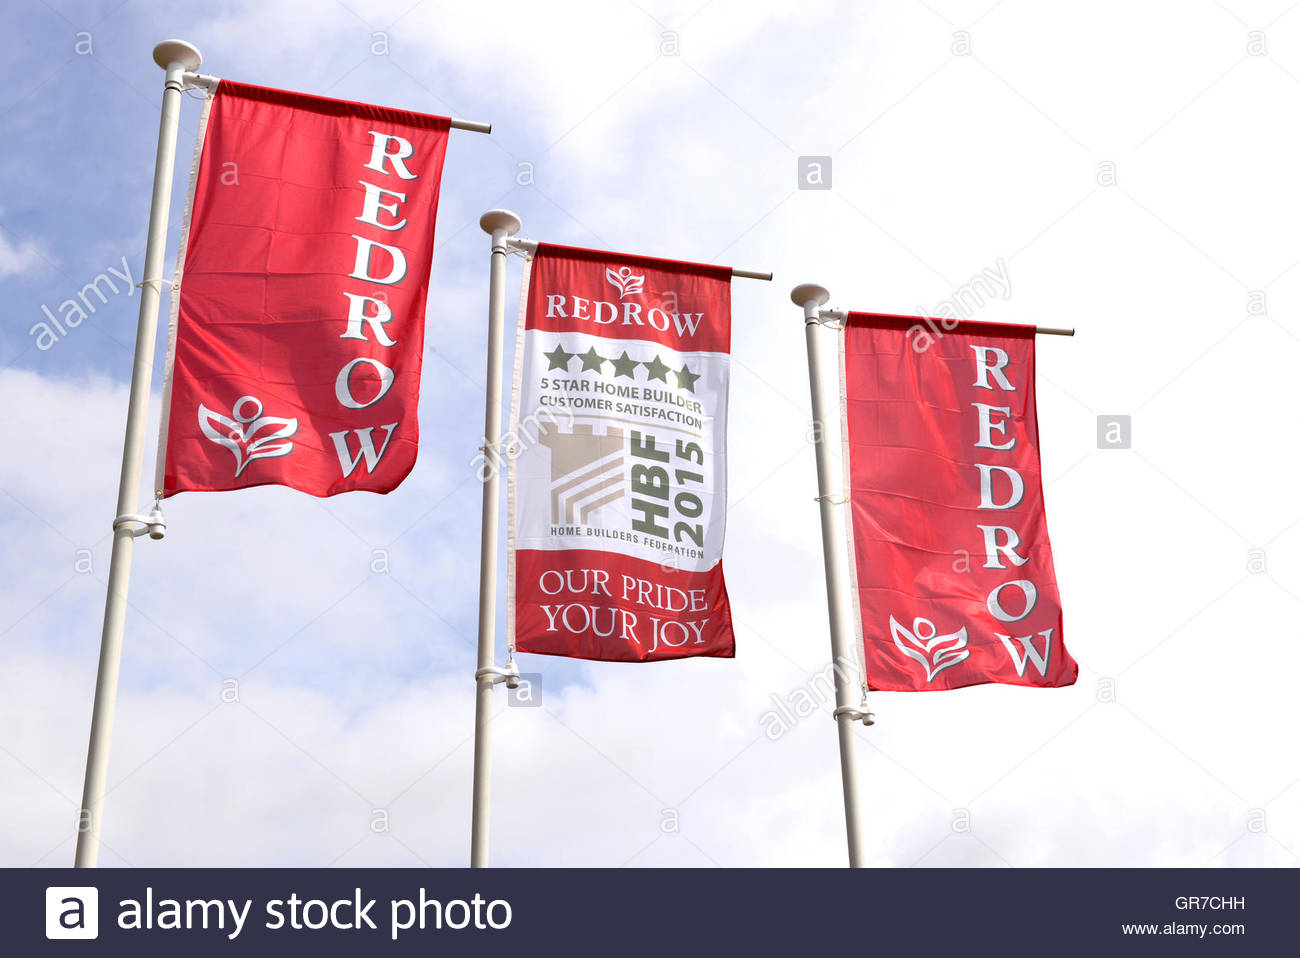 Redrow Homes Stock Photos & Redrow Homes Stock Images - Alamy